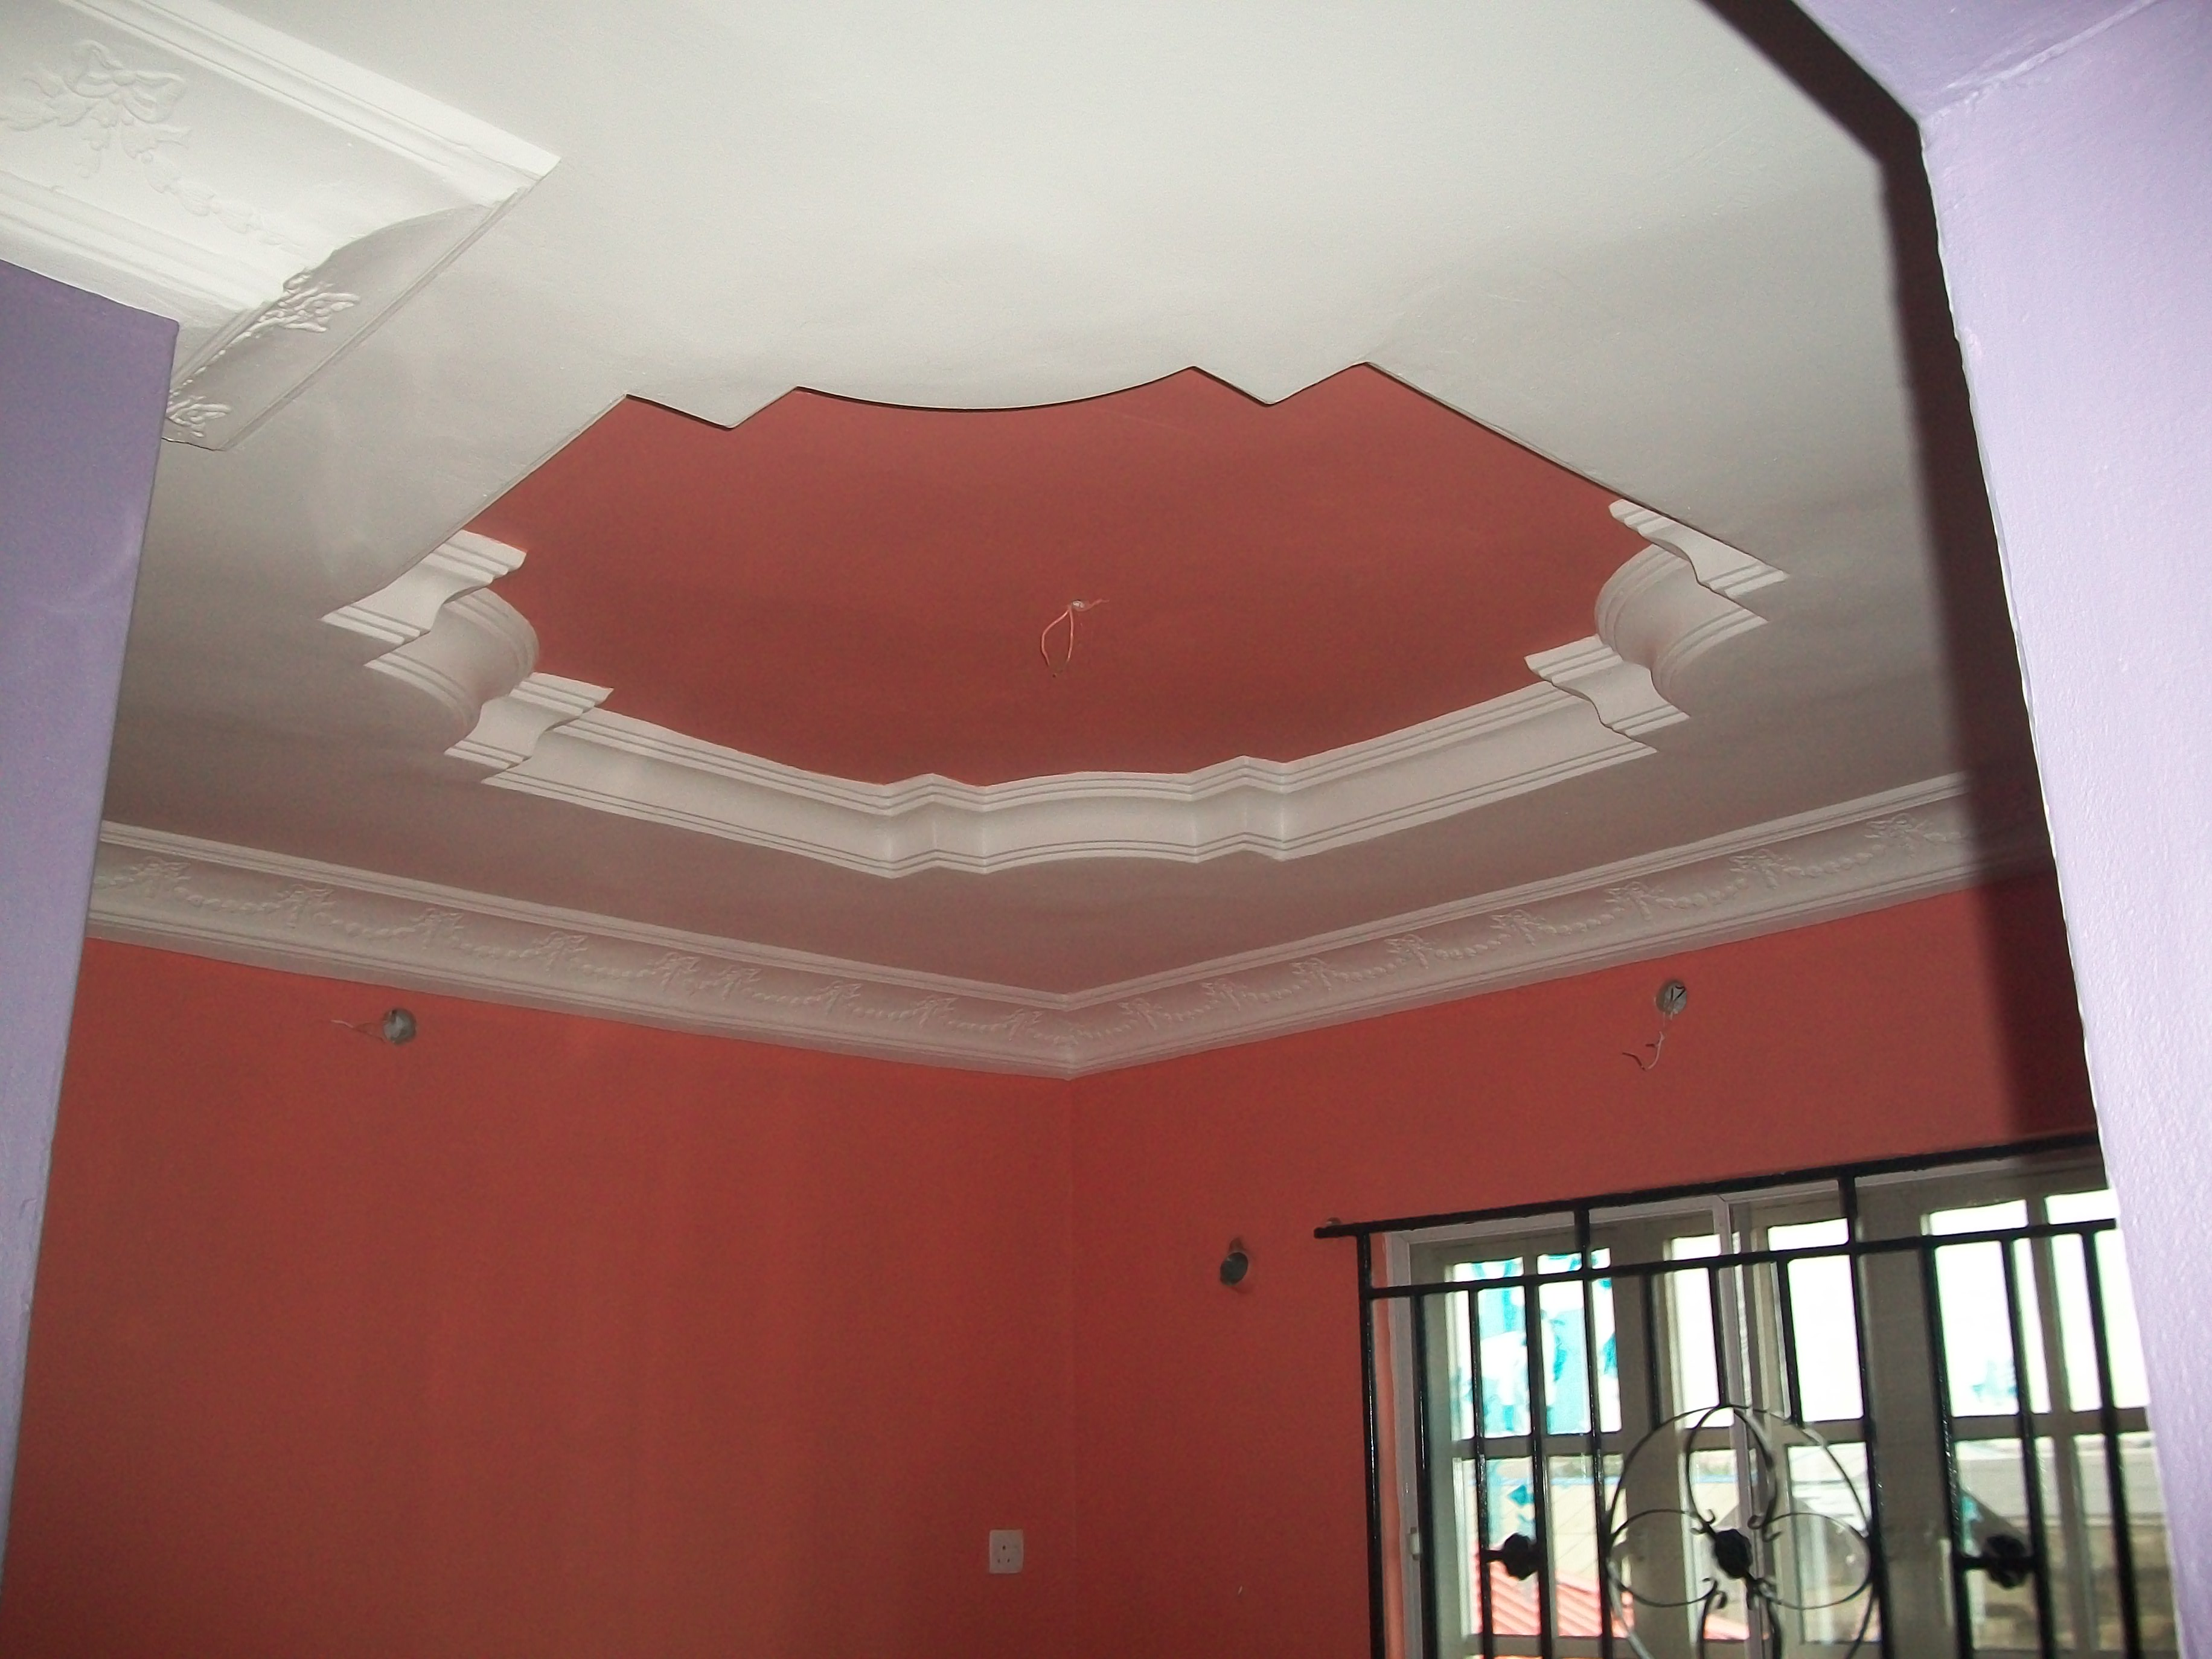 P O Ceiling Means Plaster Of Paris This Can Be Used To Produces Casting Ceilings Cornices Rosaces Molus And Flower Puts Etc All Mentioned